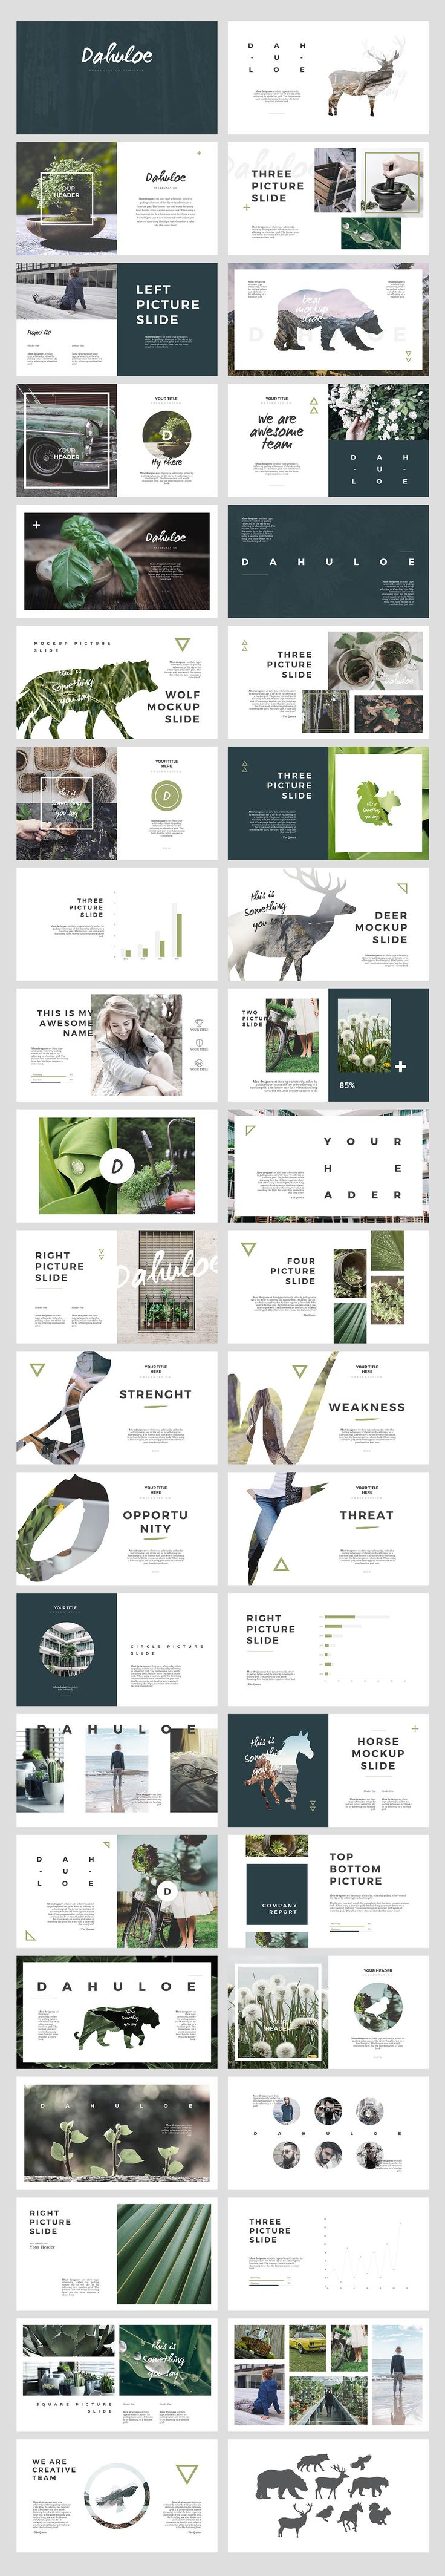 119 best design a graphic images on pinterest corporate identity